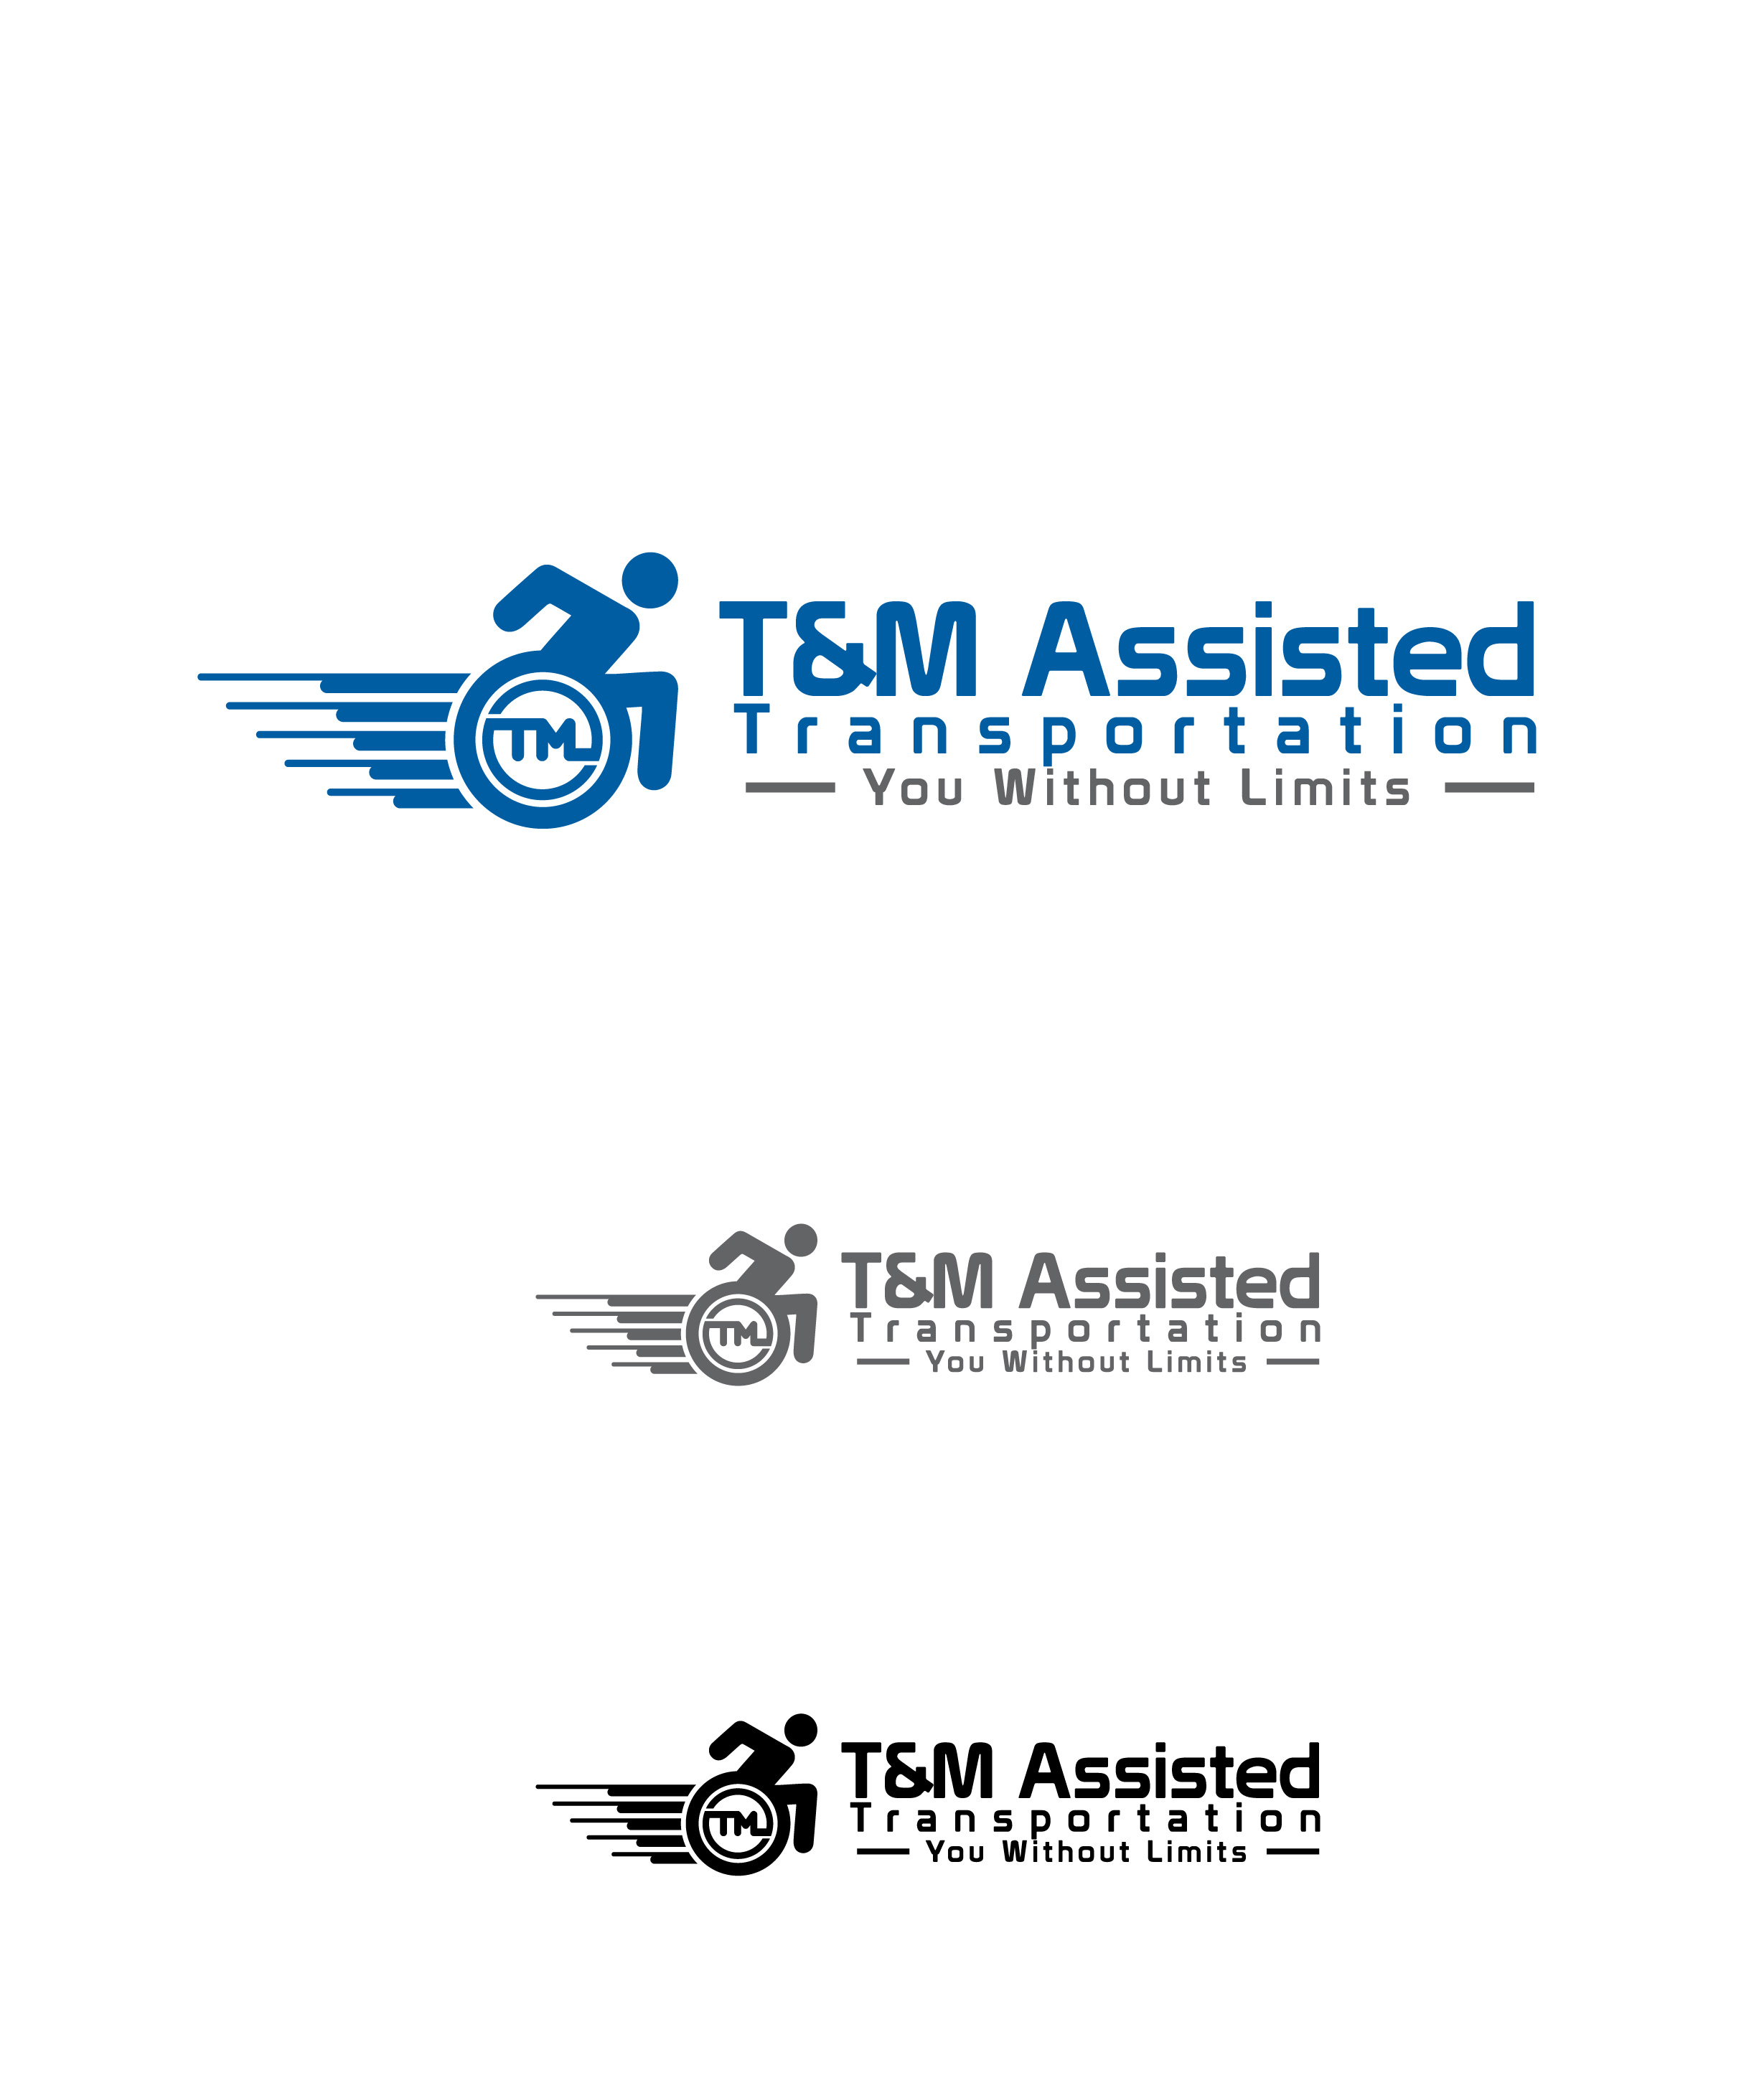 Logo Design by lagalag - Entry No. 41 in the Logo Design Contest Artistic Logo Design for T & M.